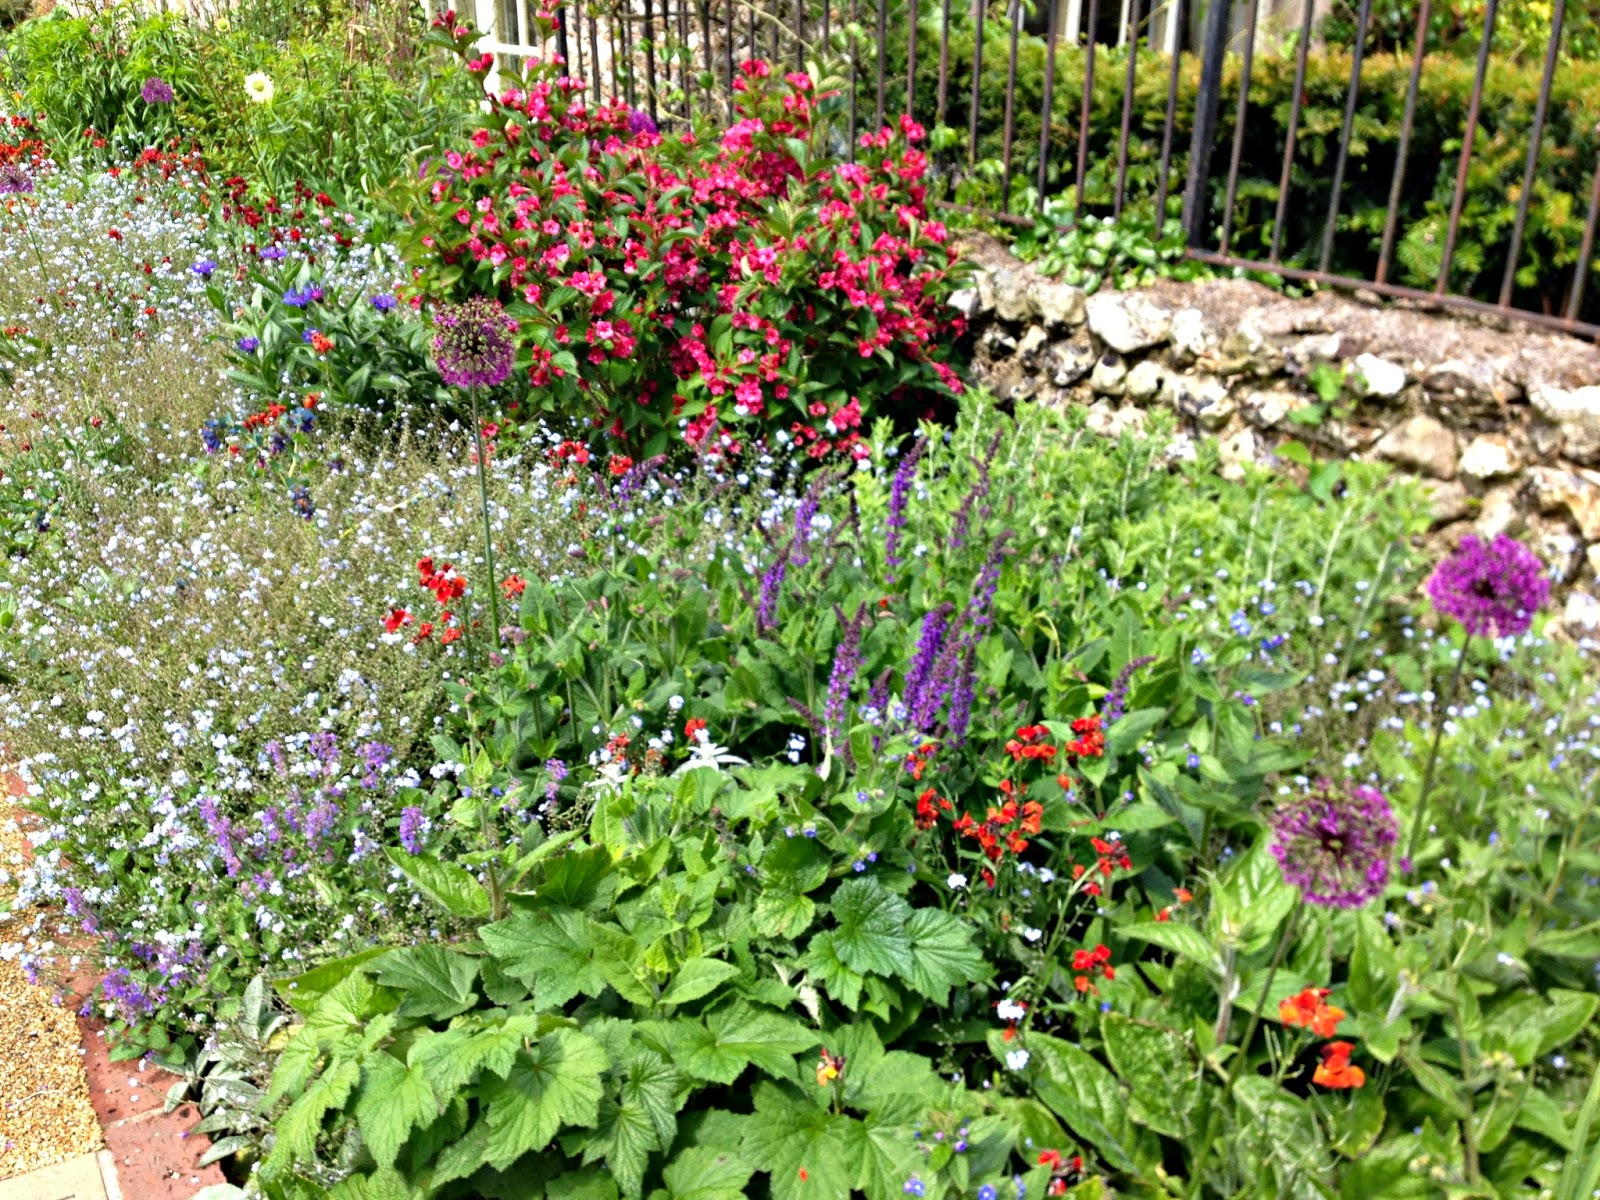 Flowers in the gardens at Lewes Castle